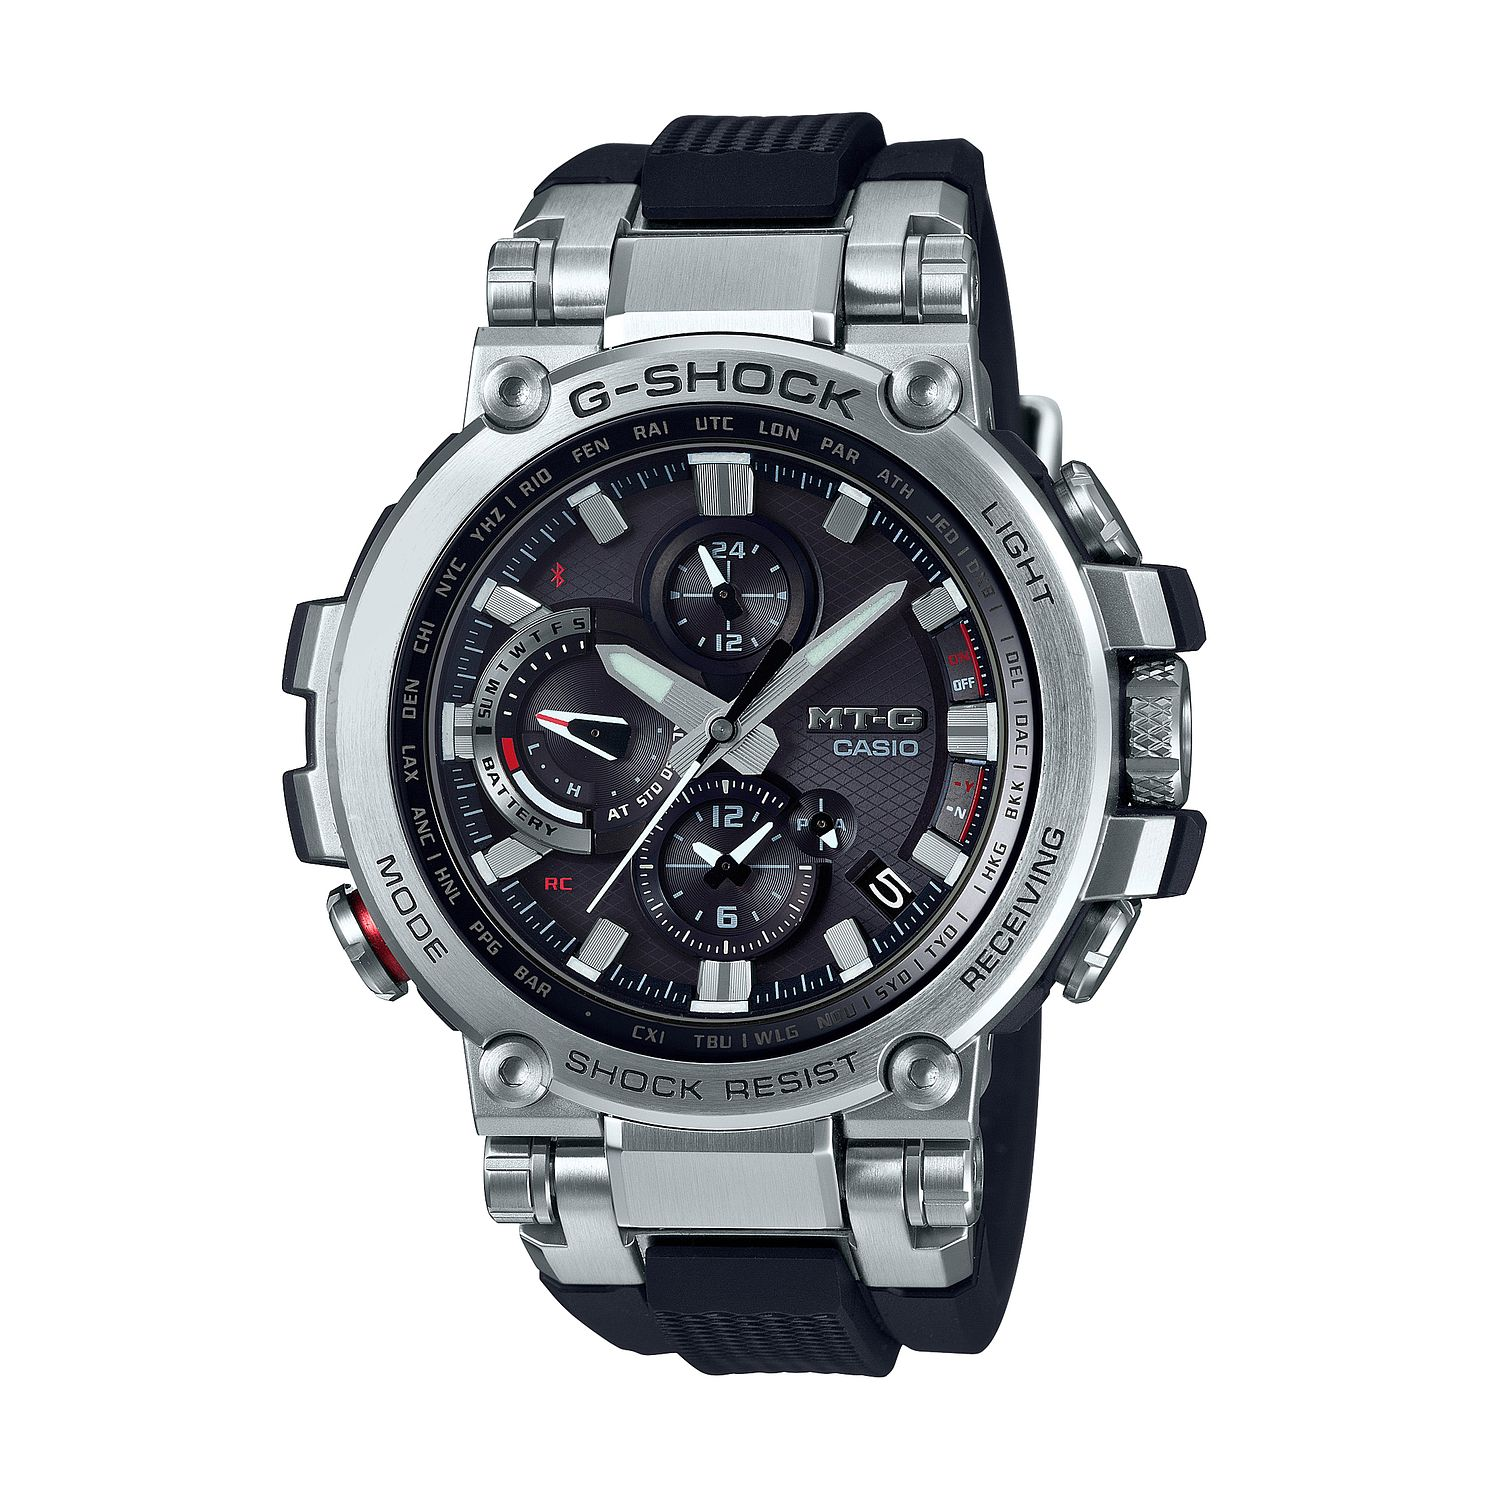 Casio G-Shock MTG-B1000-1AER Black Silicone Strap Watch - Product number 4845277